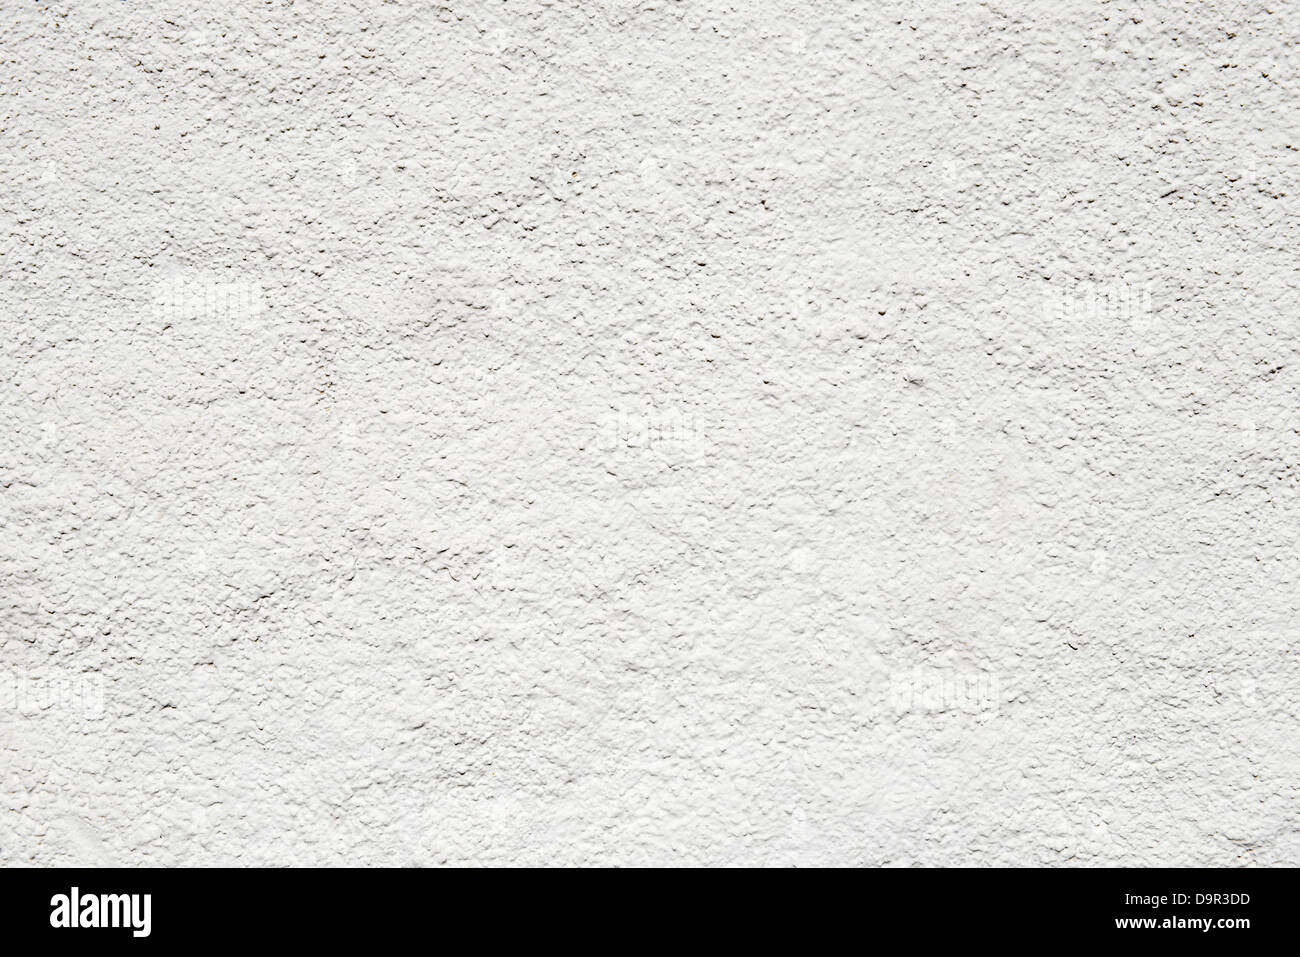 stone texture white painted concrete wall background stock photo. Black Bedroom Furniture Sets. Home Design Ideas